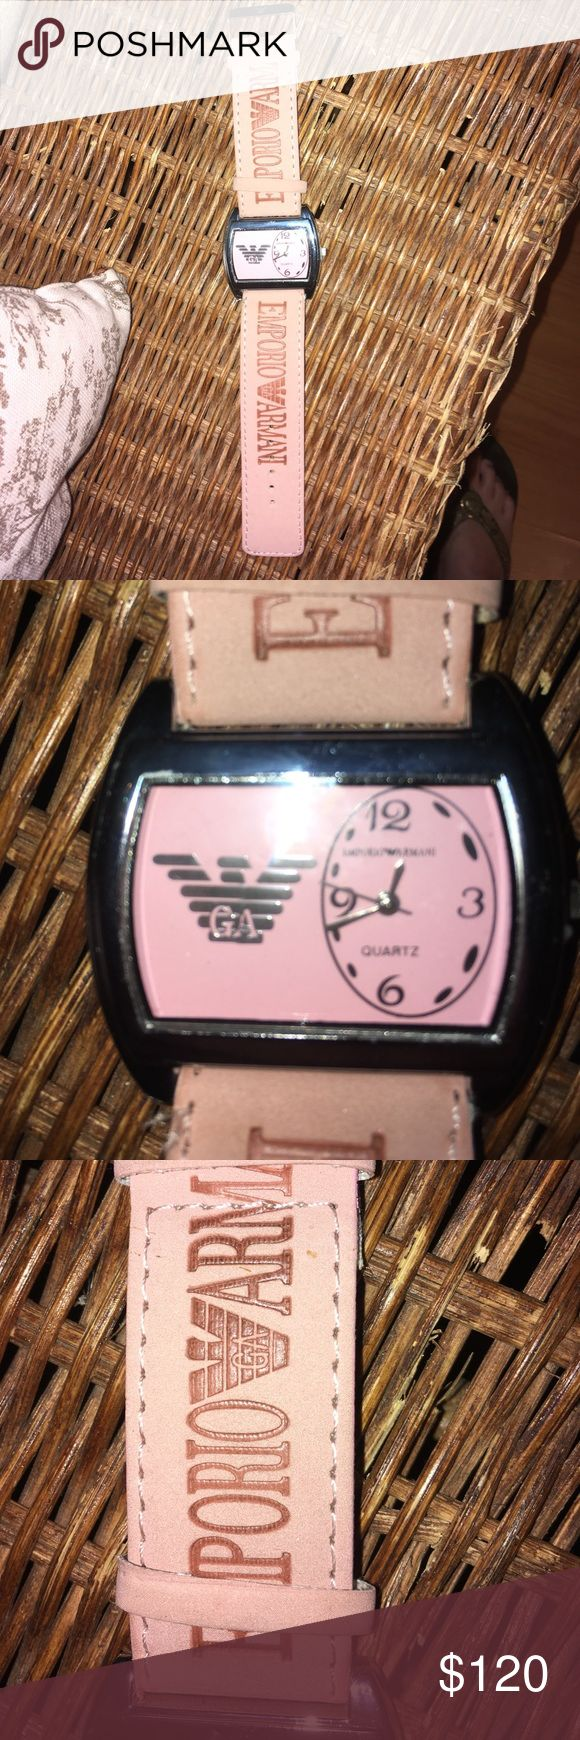 Emporio Armani watch Gorgeous authentic Emporio Armani. Water Resistant and stainless steel. In good condition it just needs a new battery. There are no visible scratches on the watch face. Beautiful light pink color. 💗 Emporio Armani Accessories Watches